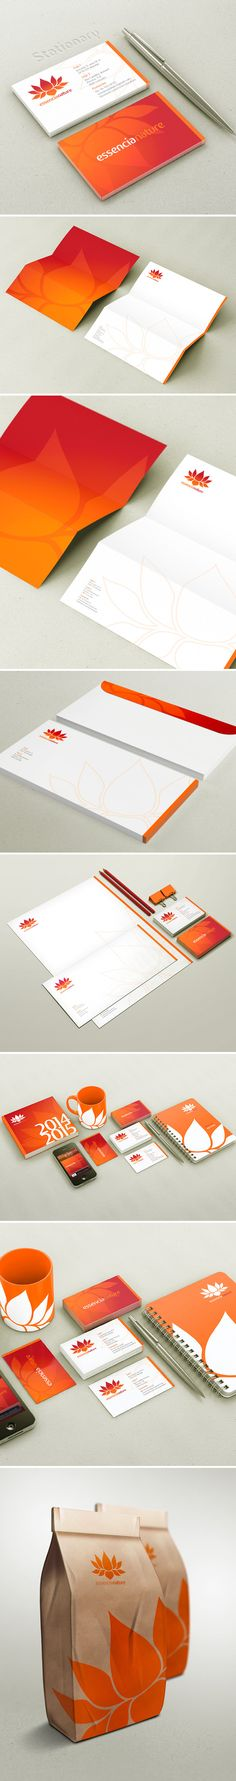 Very neat brand. Nice and clean, I really like the way the color works in this. The promotional materials all work well together and apart from the stationary. I'm impressed by this one.